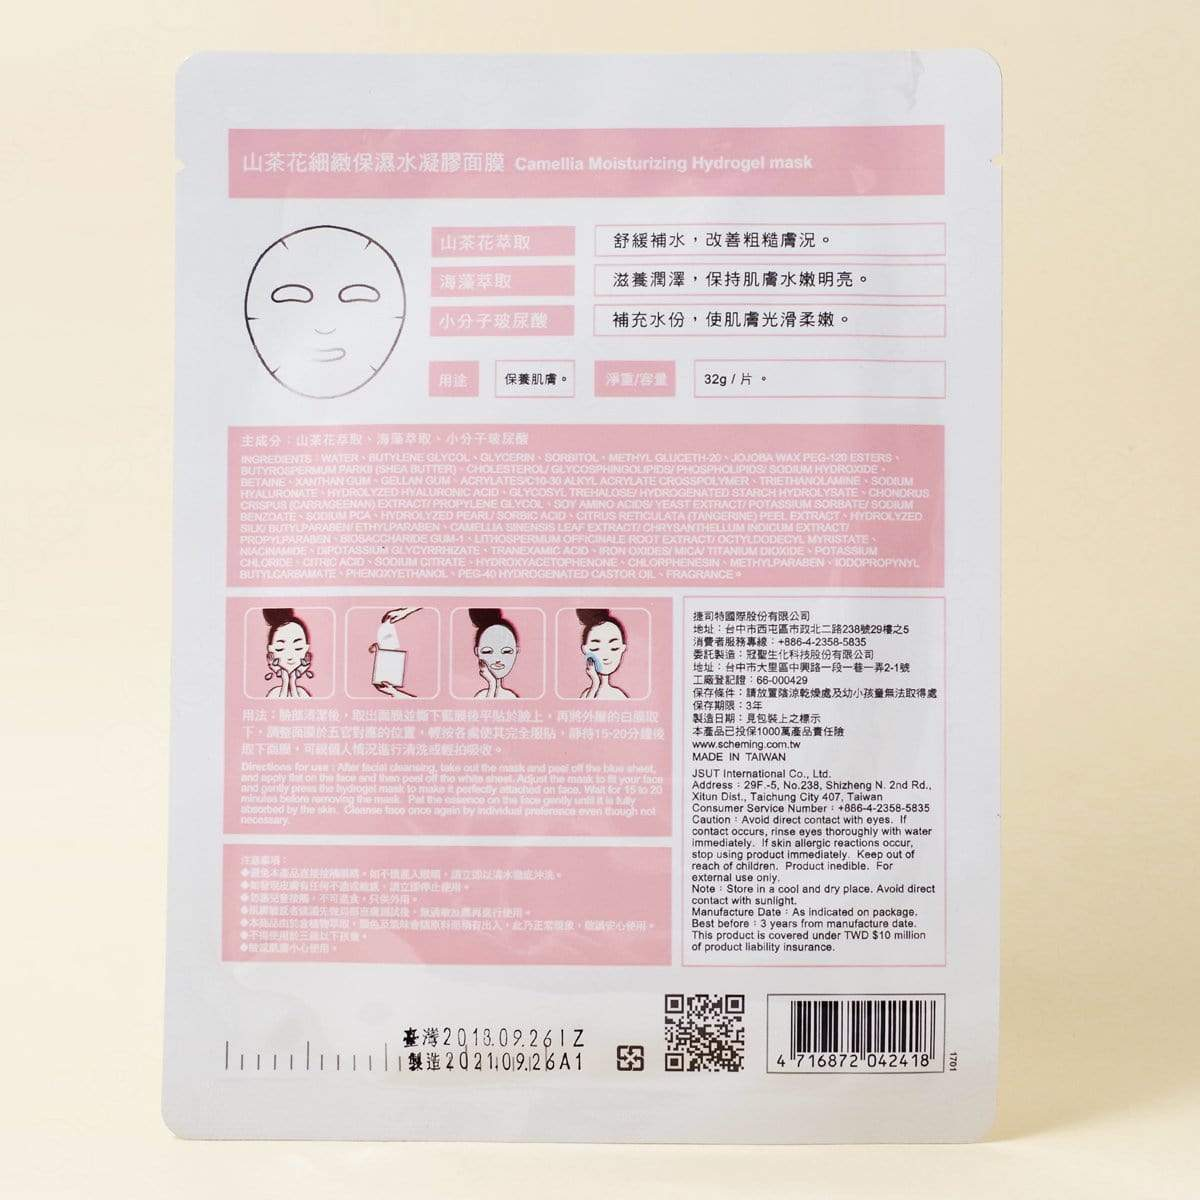 My Scheming Camellia Moisturizing Hydrogel Sheet Mask